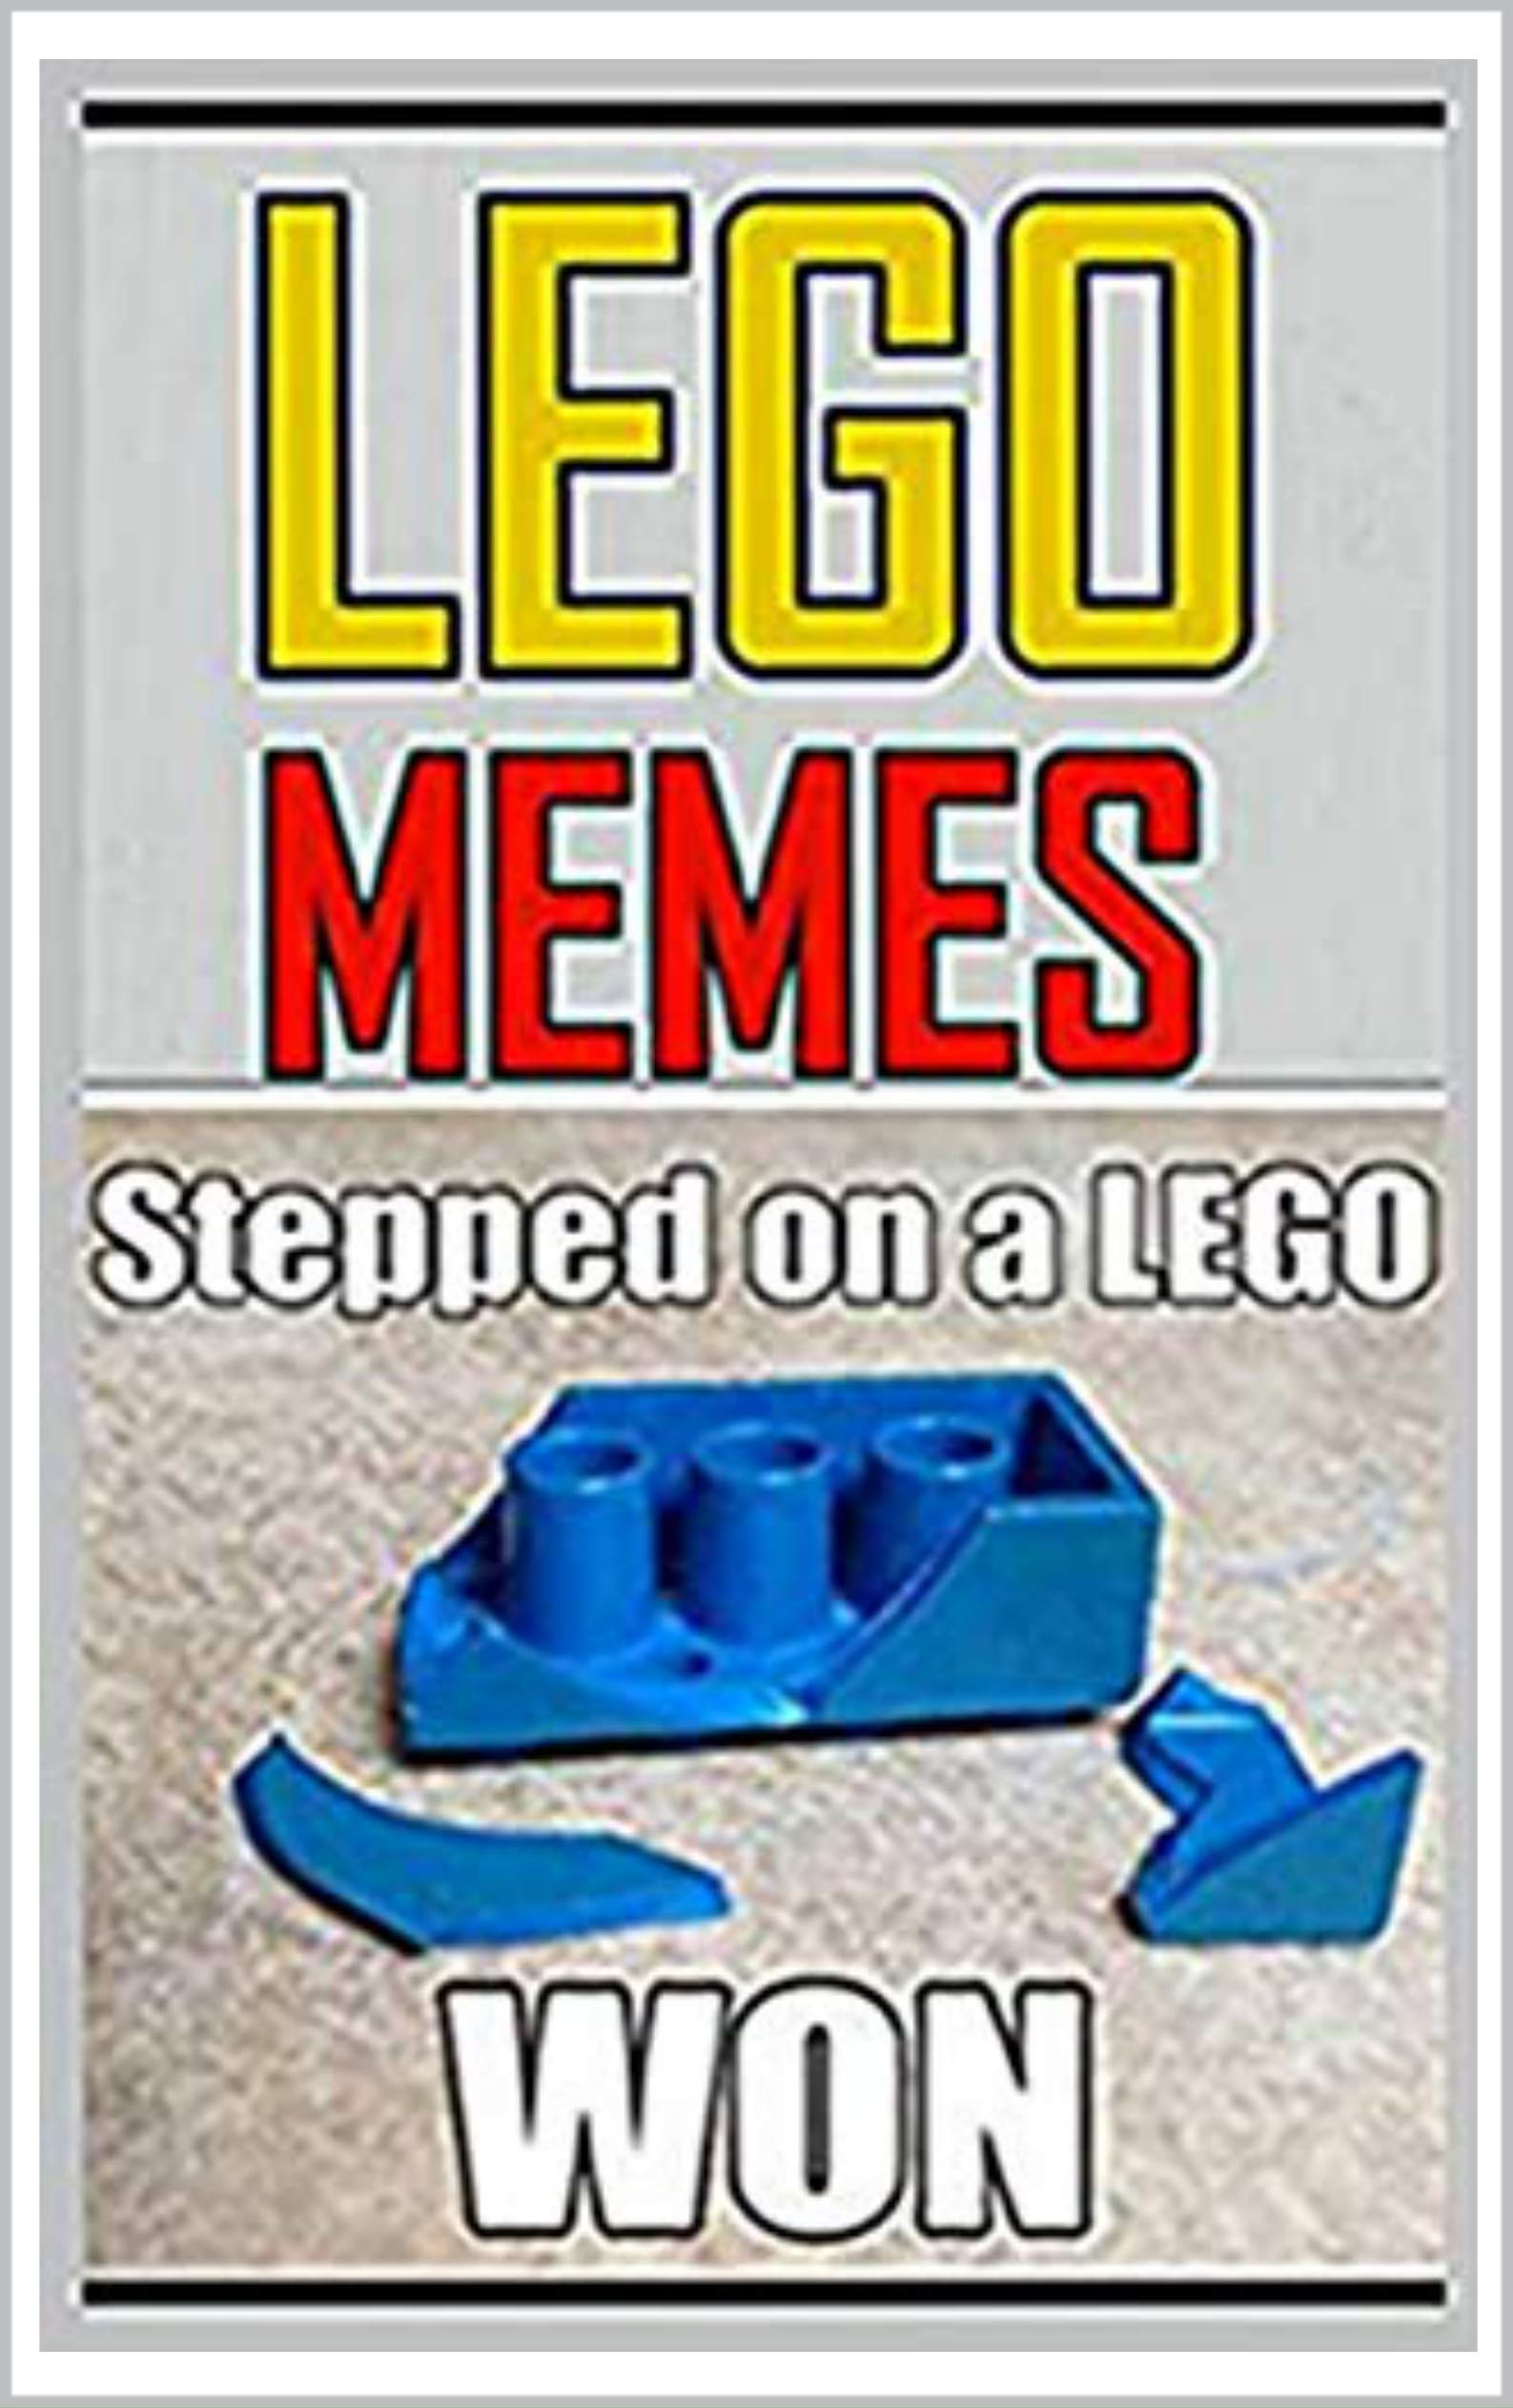 Lego Jokes, Meems & Internet Comedy - Joke Books Lego Special With Other Cool Stuff Too